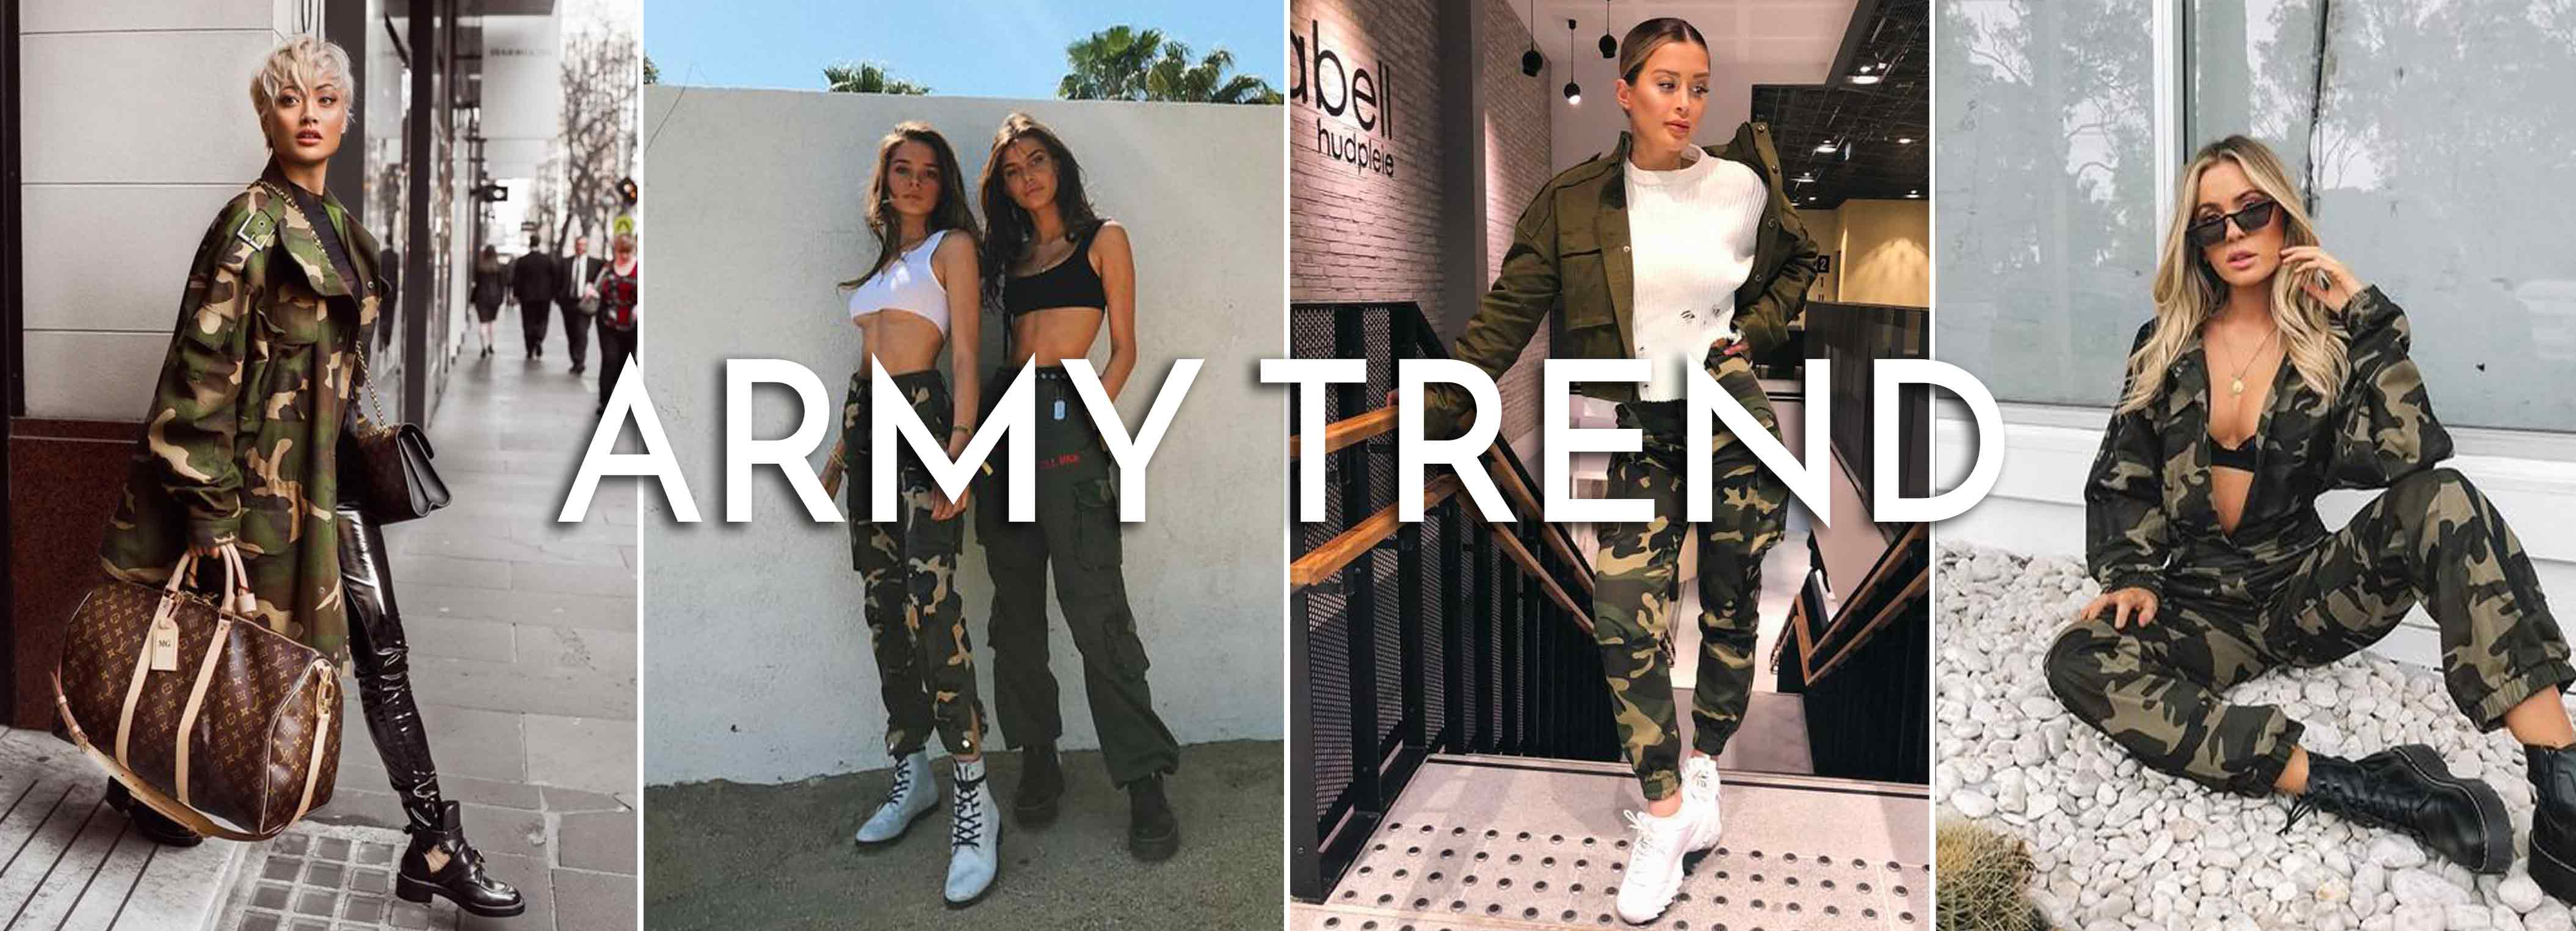 Army trend